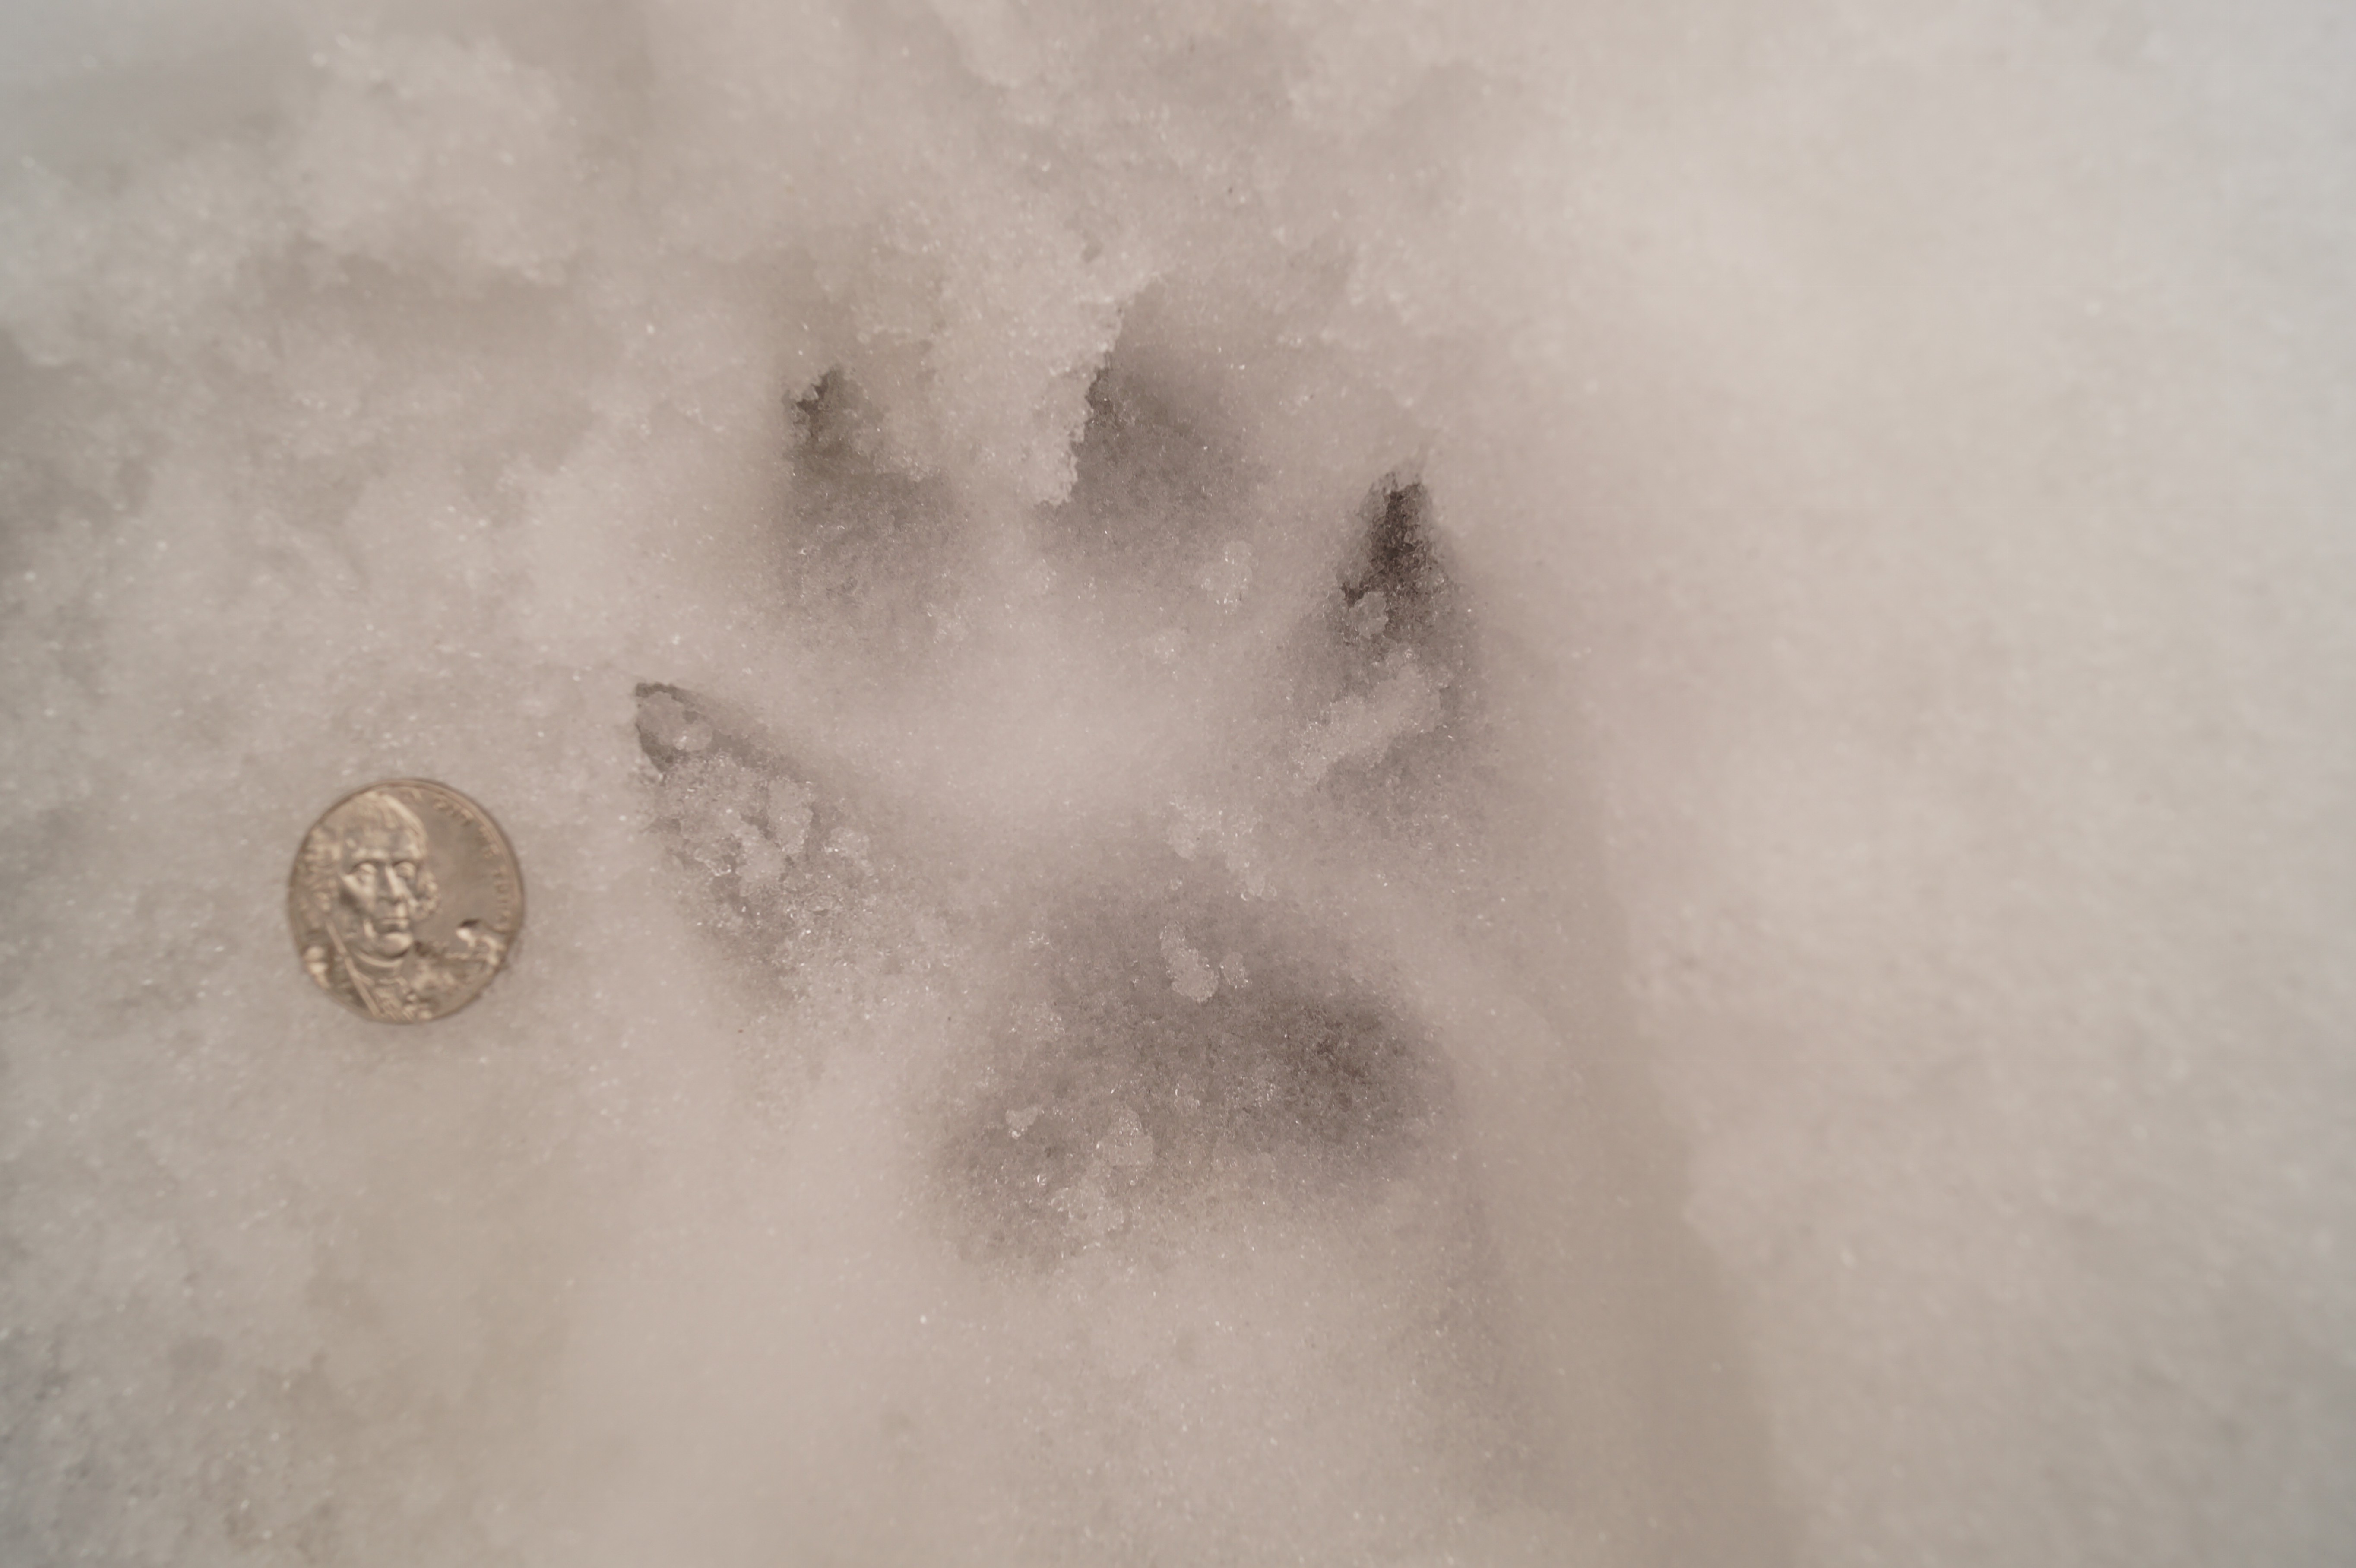 Coyote tracks in the snow natural history there is no hard and fast rule from telling dog tracks from coyote tracks but in this case there are no other domestic dogs running loose on this road publicscrutiny Choice Image